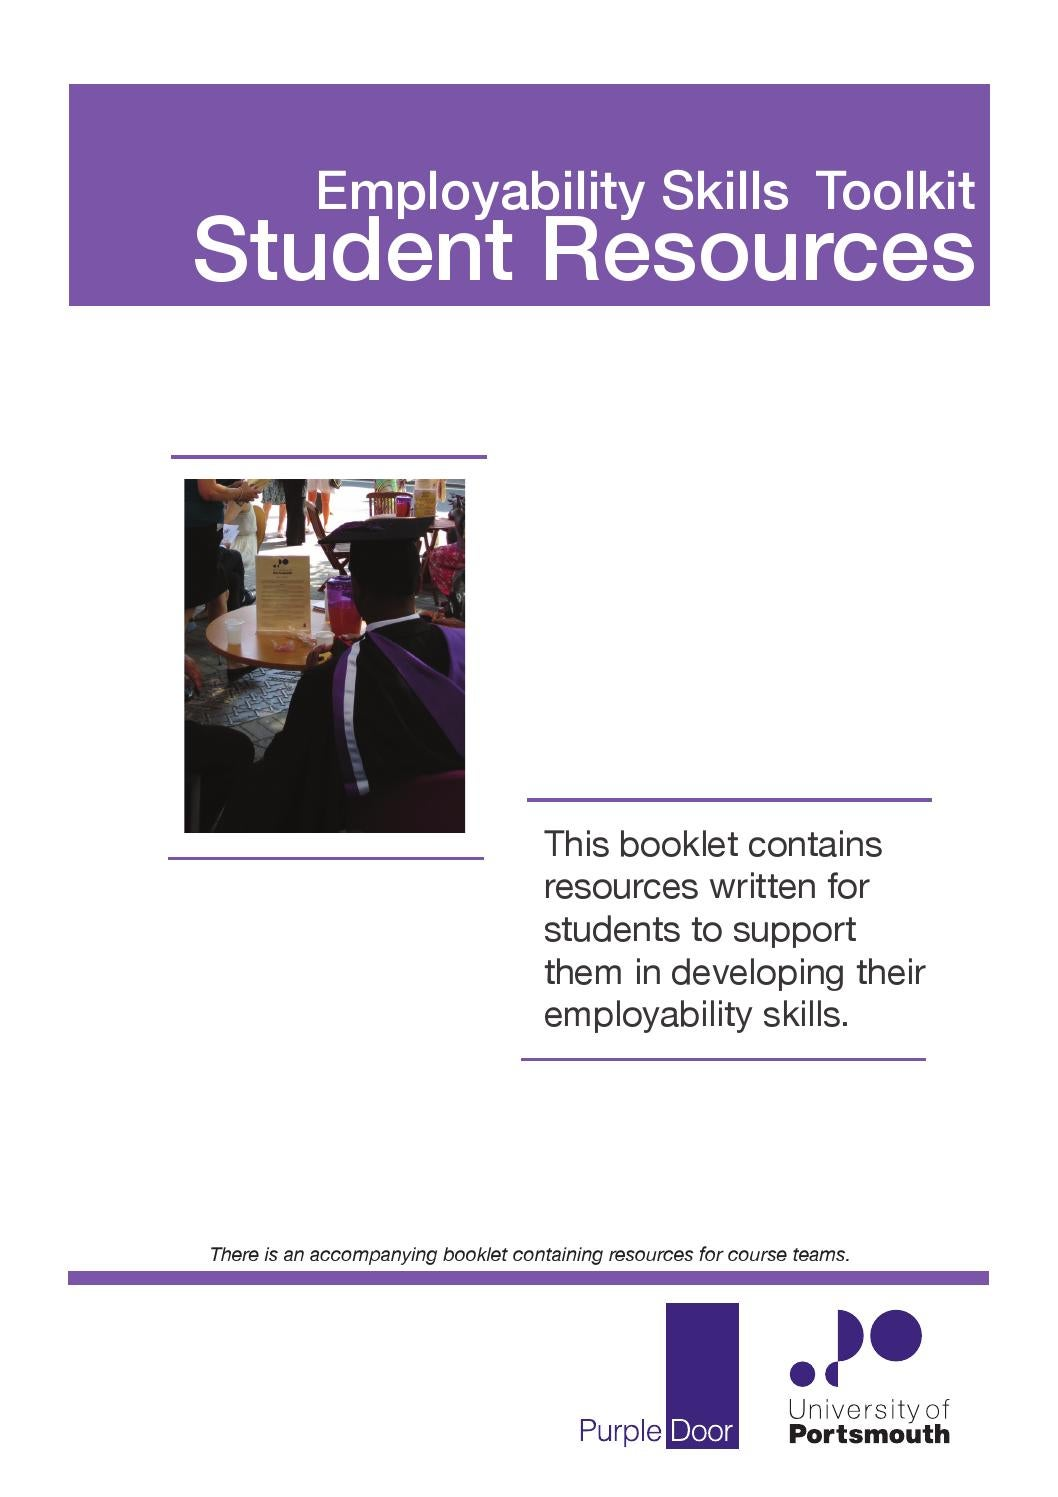 careers recruitment employability skills toolkit employability skills toolkit employability skills toolkit stud ddd1a5d5a2eff2 3 years ago uoppurpledoor